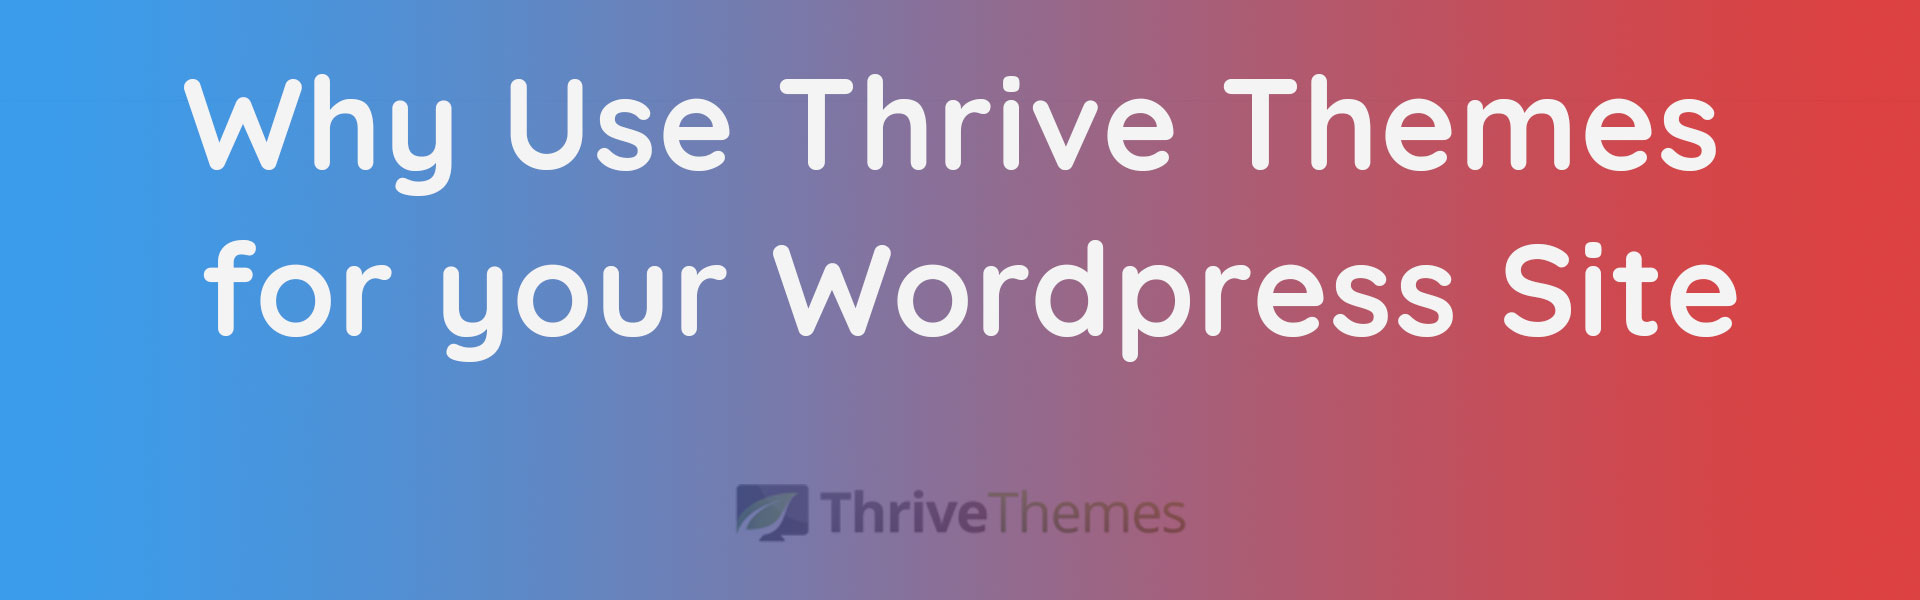 Amazon Thrive Themes WordPress Themes  Deals